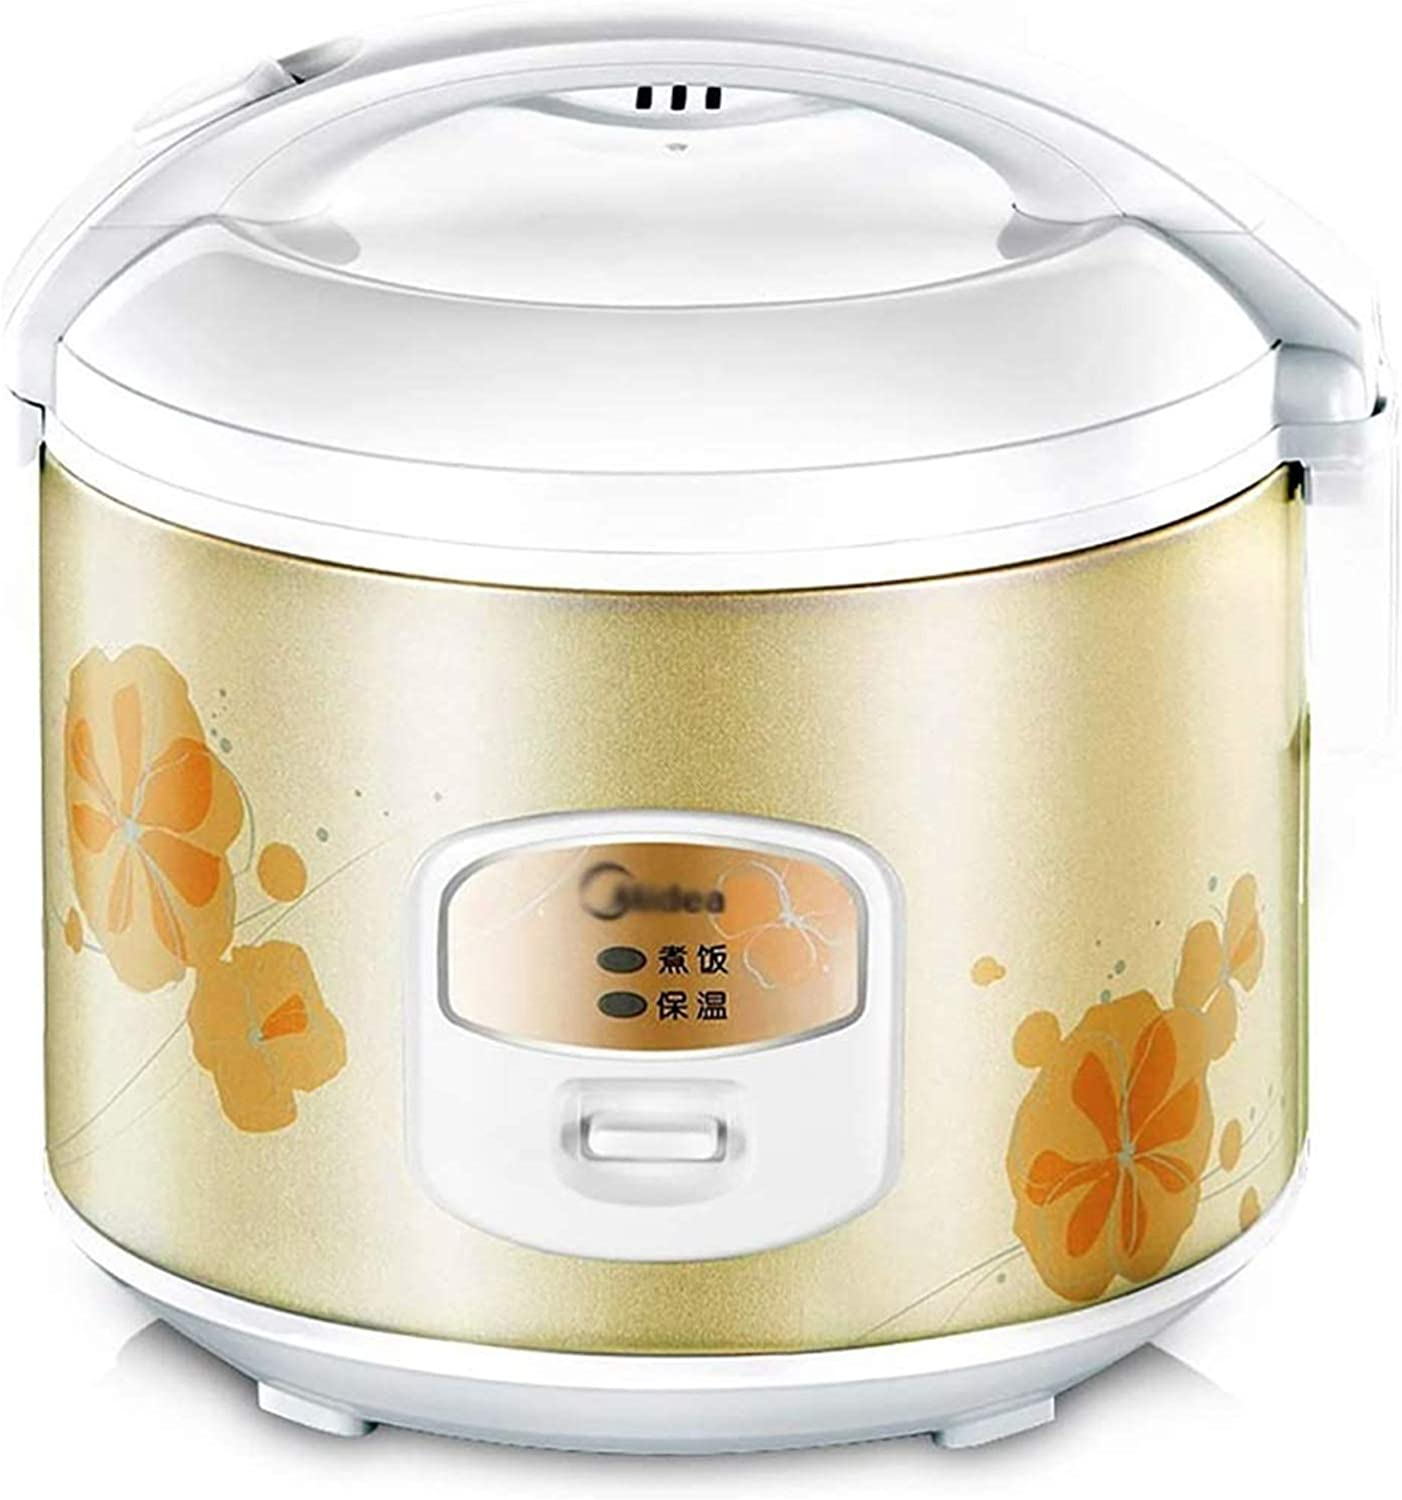 ZYQDRZ Mini Rice Spring new work one after another Cooker 2-4 Fort Worth Mall Household People